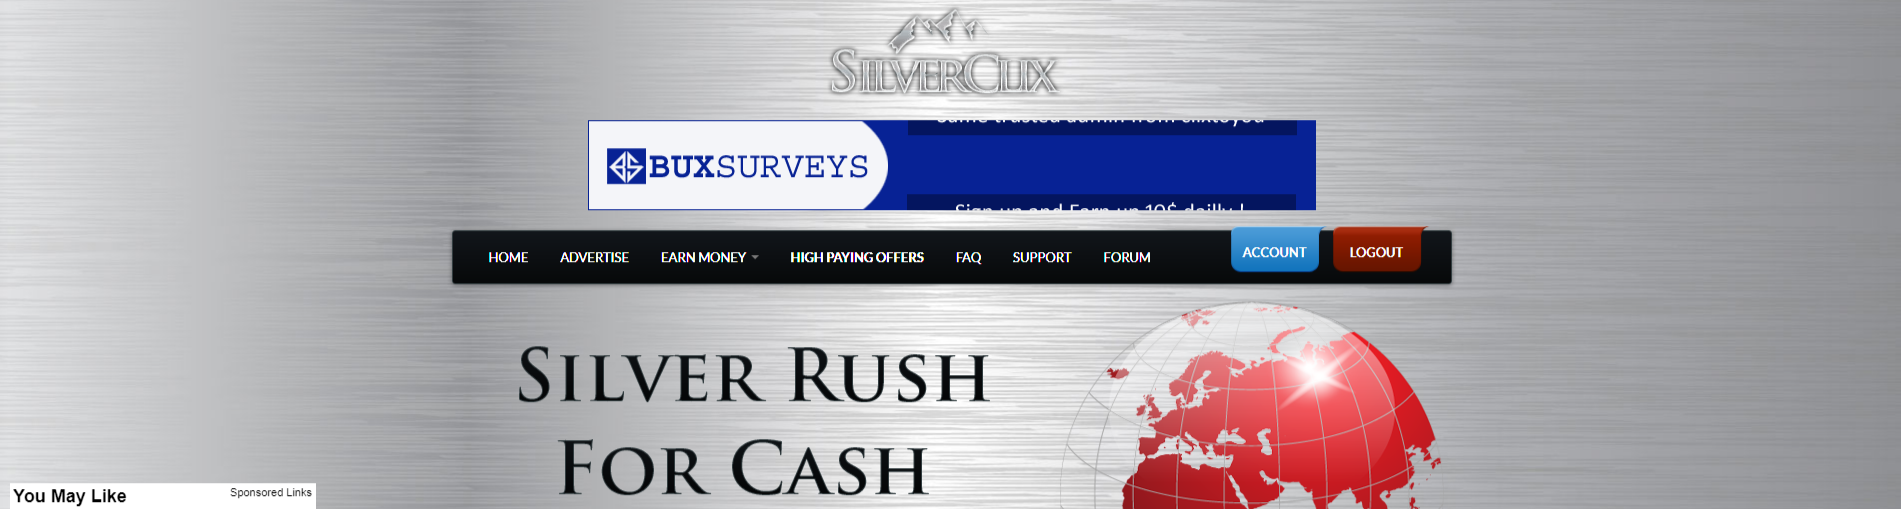 silverclix.com Review – SCAM or LEGIT?